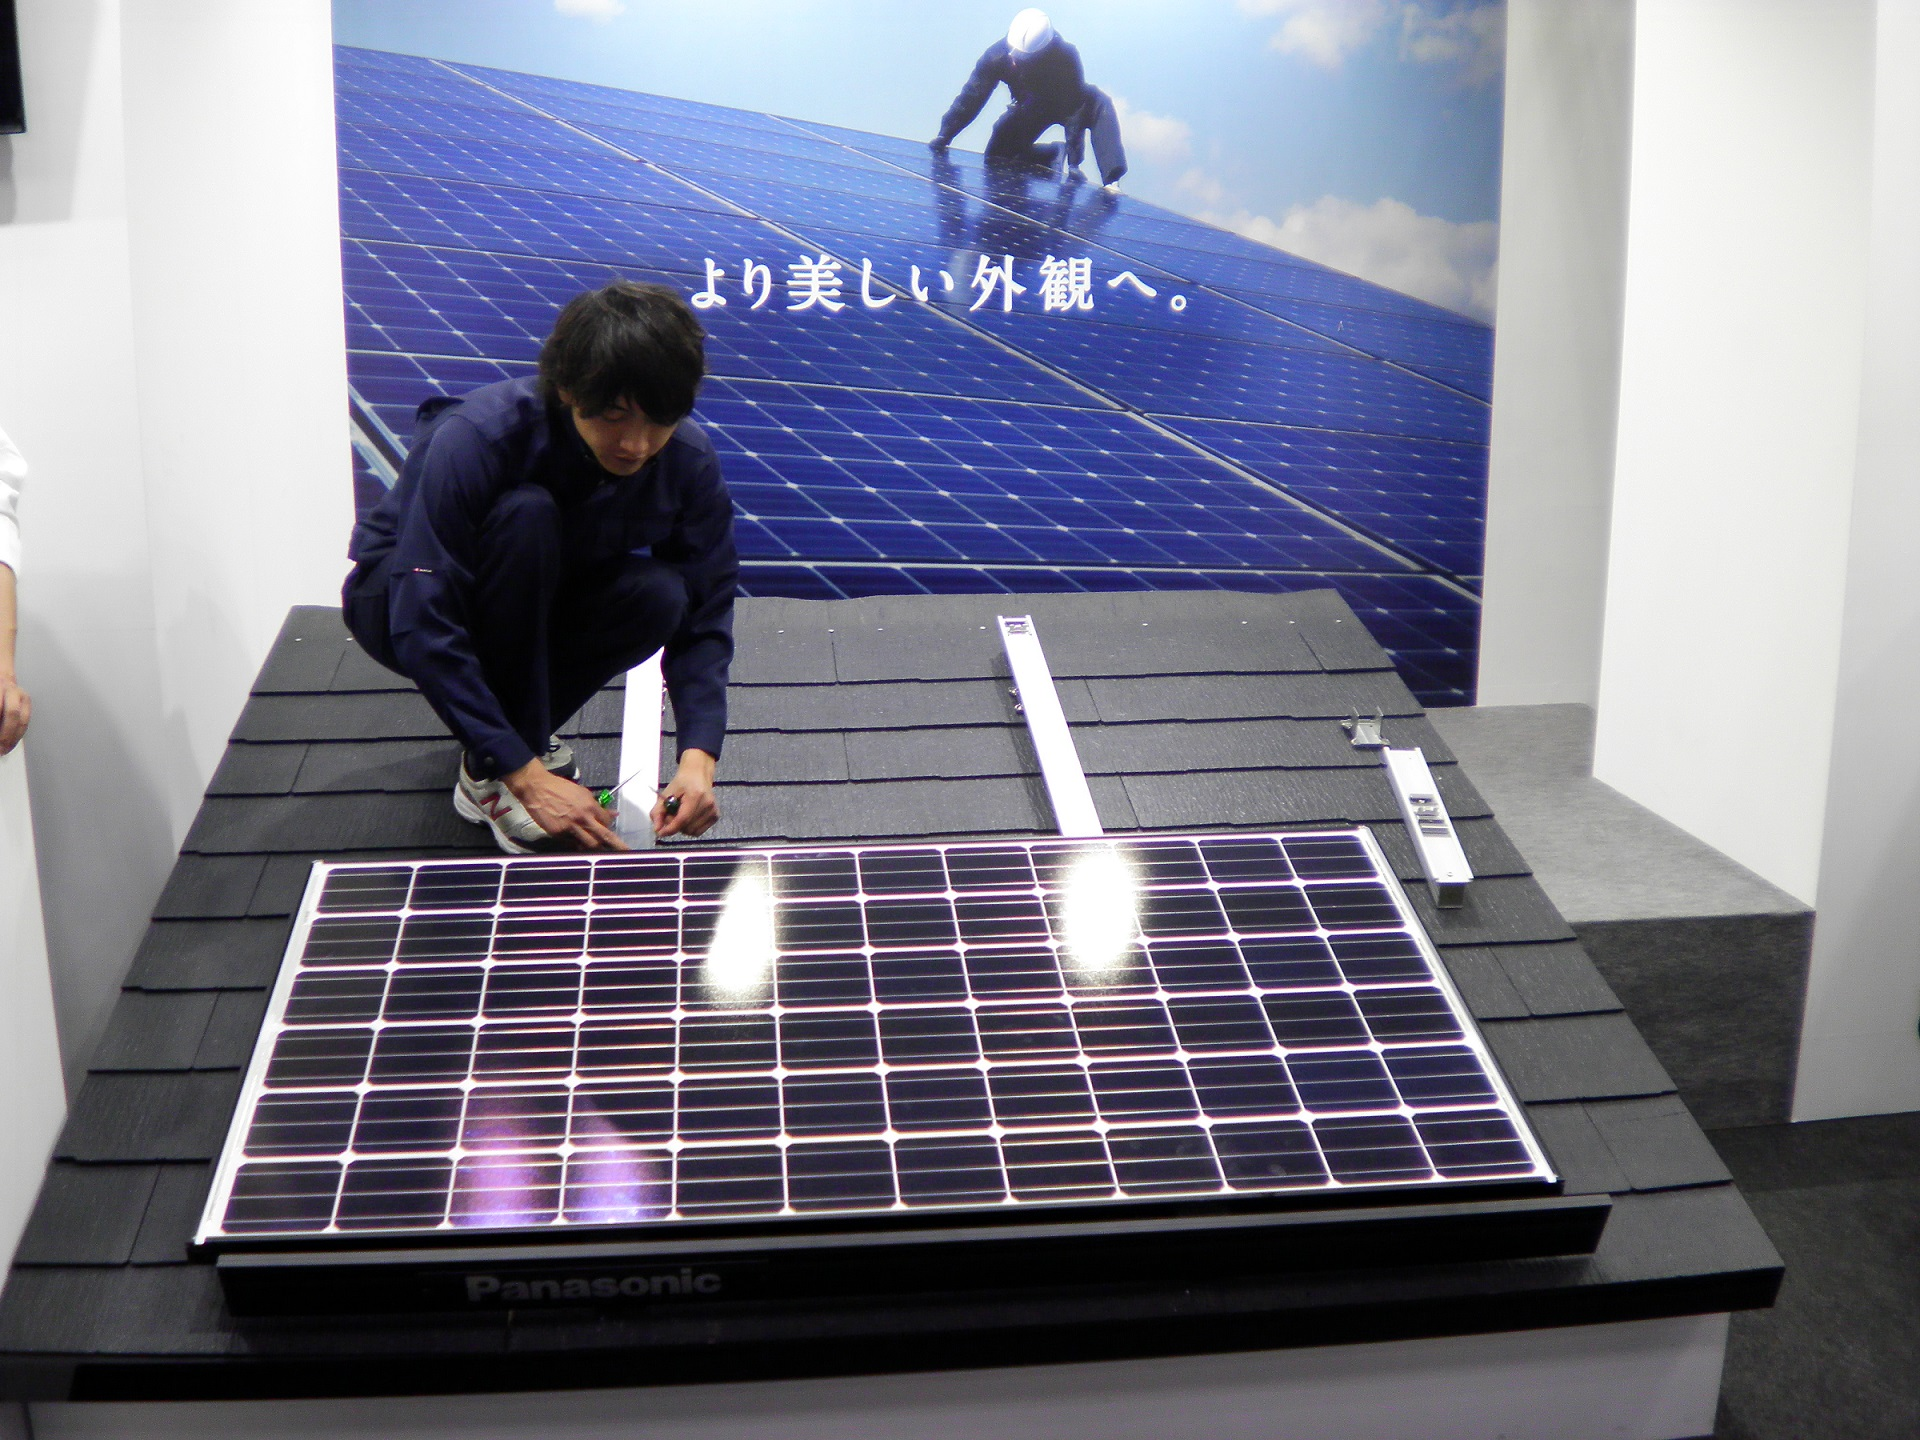 Cost reductions toward grid parity are likely to come from areas including streamlining installation processes. Shown here is a demonstration from Panasonic. Image: Andy Colthorpe.